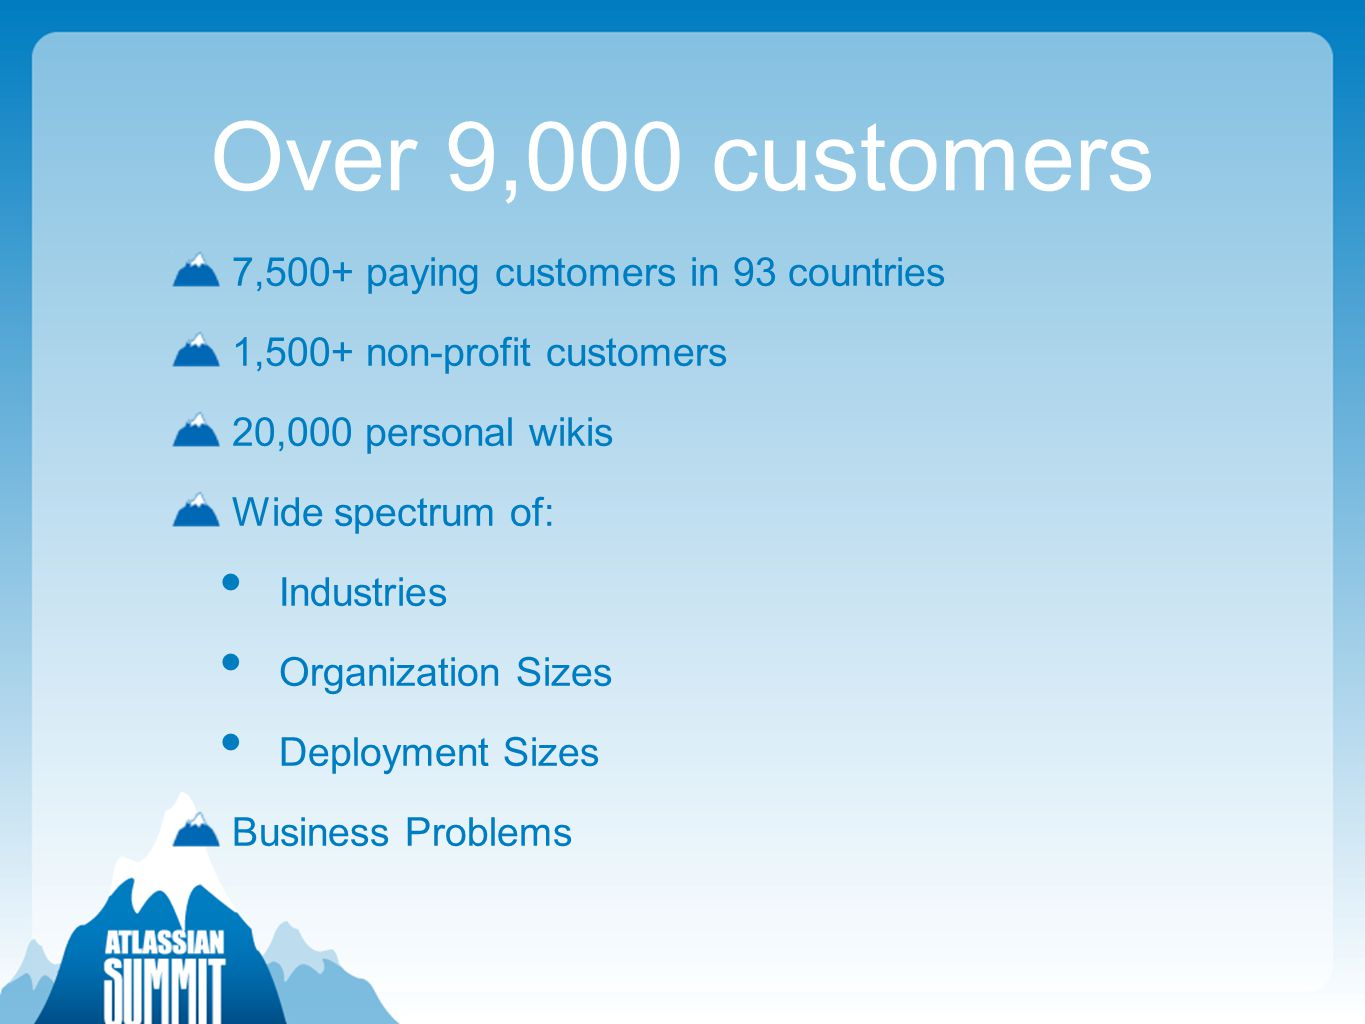 Over 9,000 customers 7,500+ paying customers in 93 countries 1,500+ non-profit customers 20,000 personal wikis Wide spectrum of: Industries Organization Sizes Deployment Sizes Business Problems